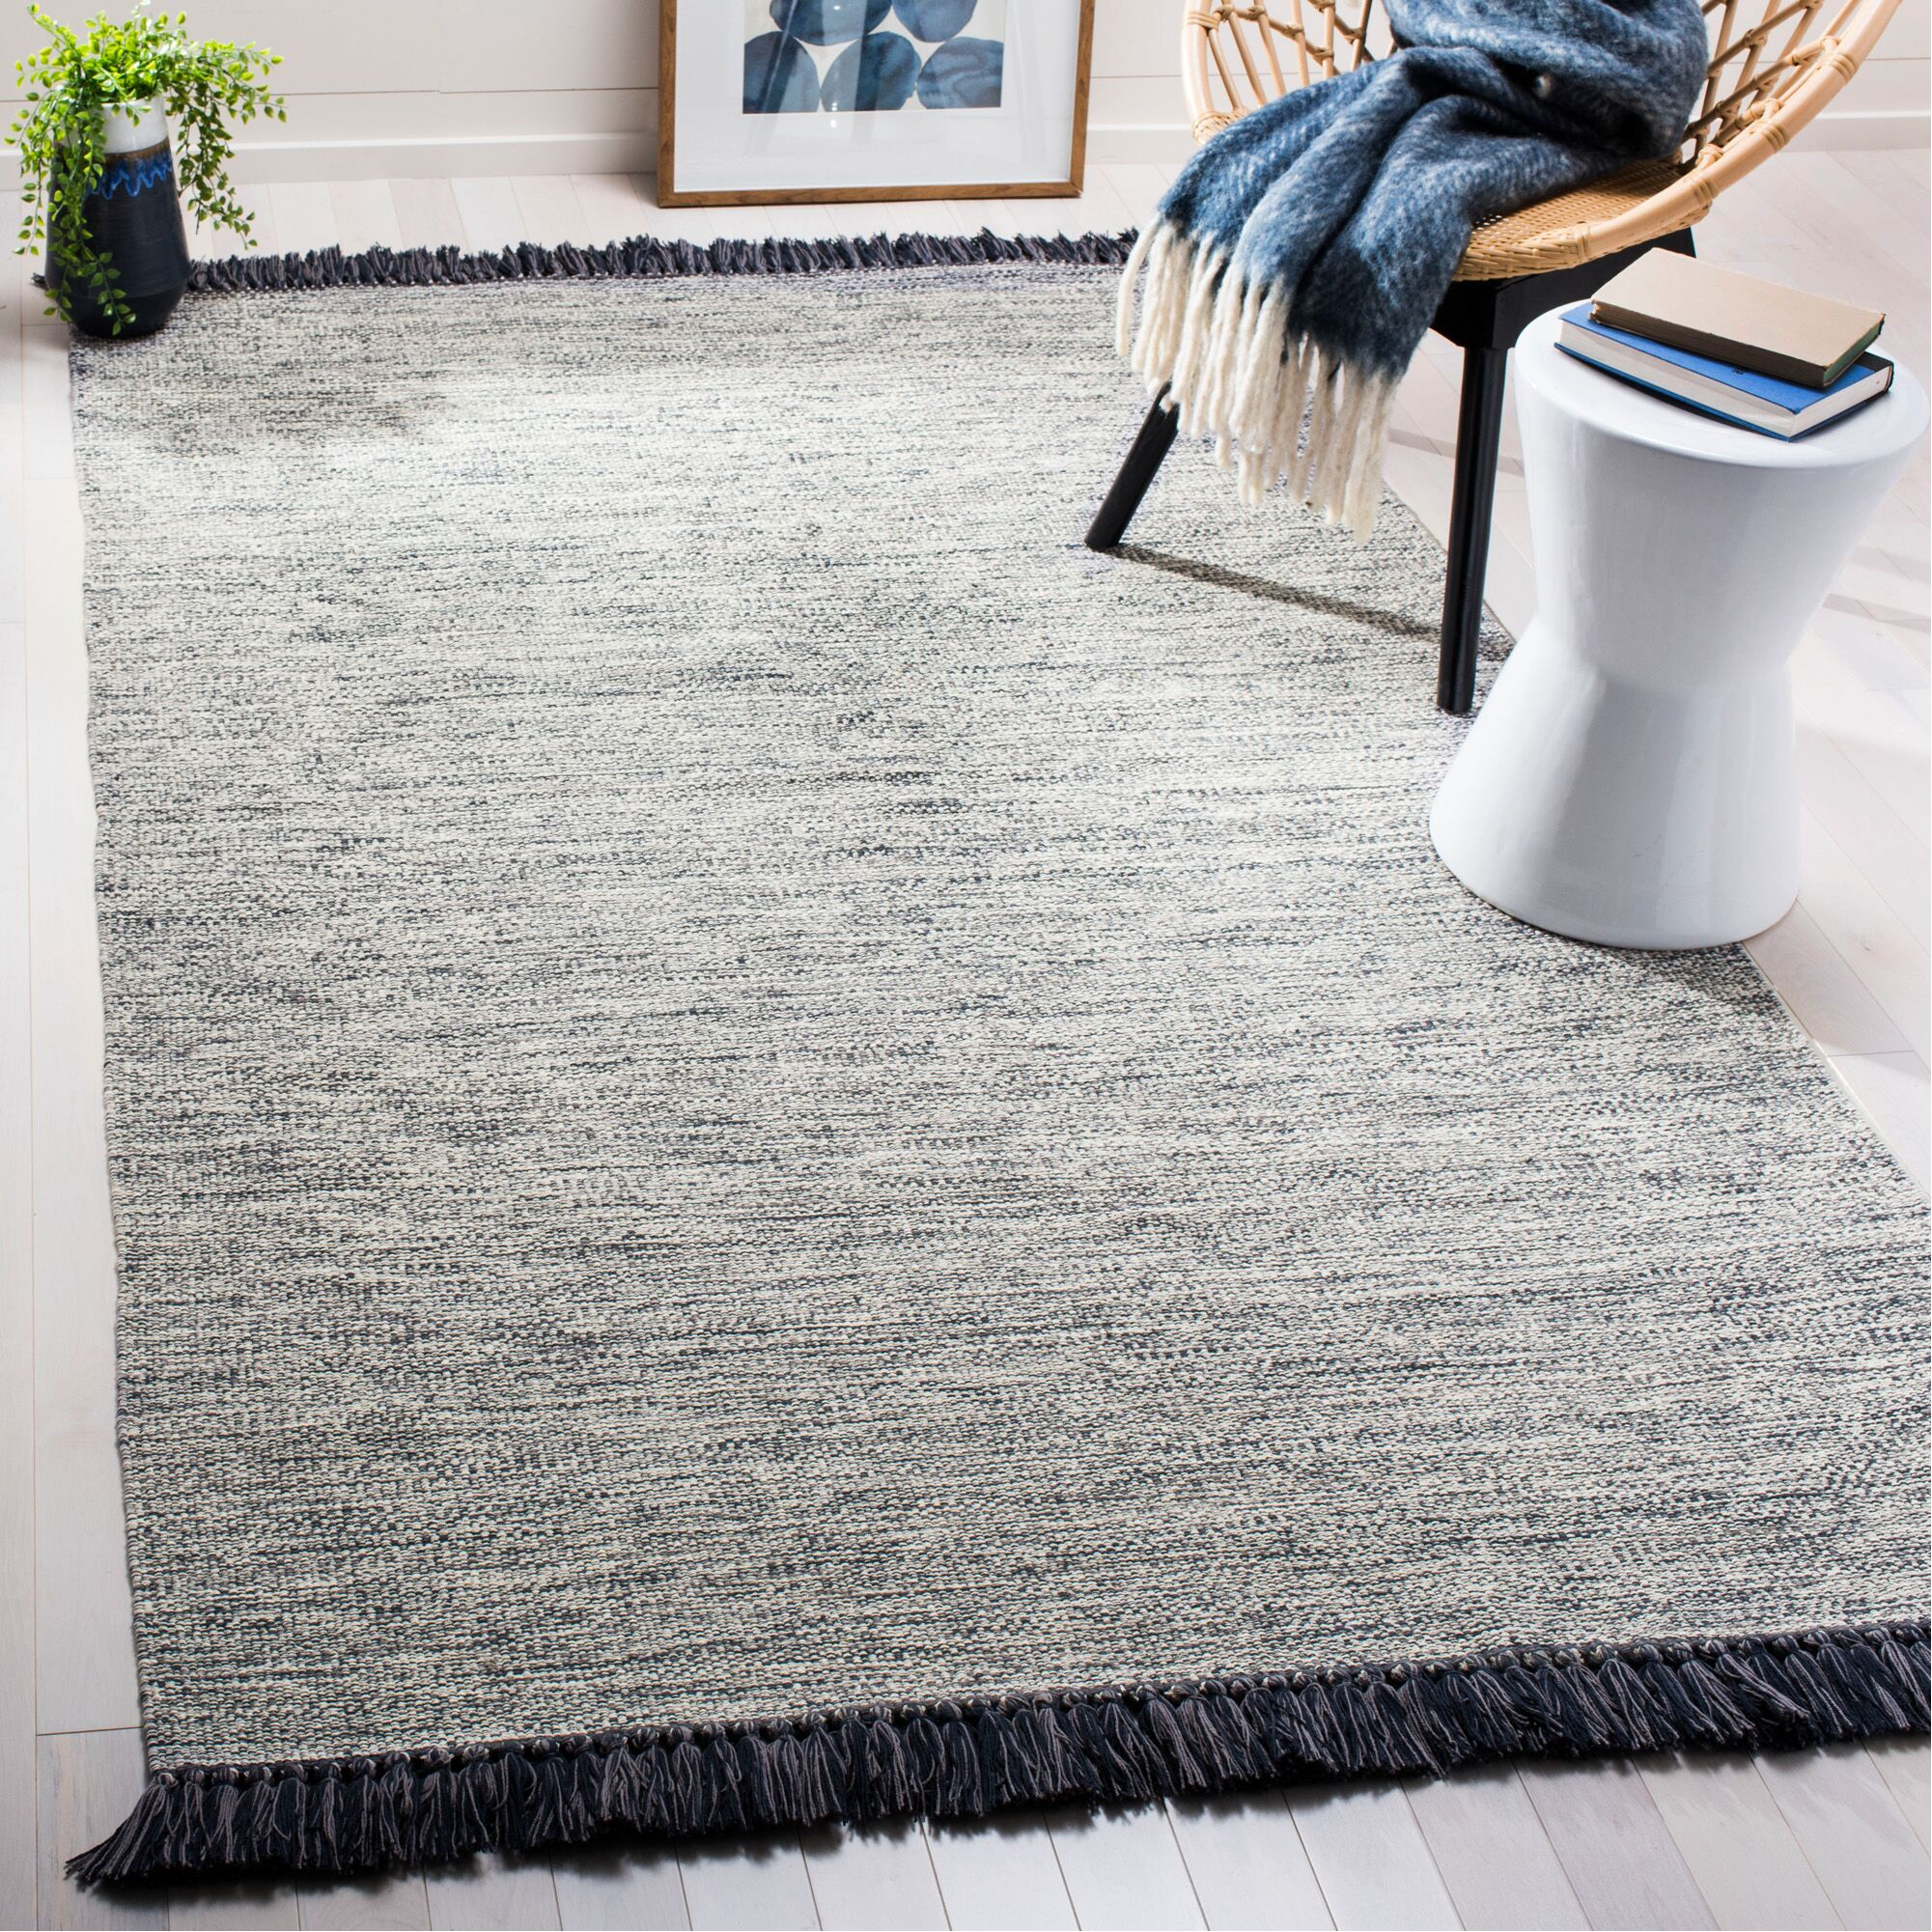 Nida Hand-Woven Gray Area Rug Rug Size: Rectangle 5' x 8'